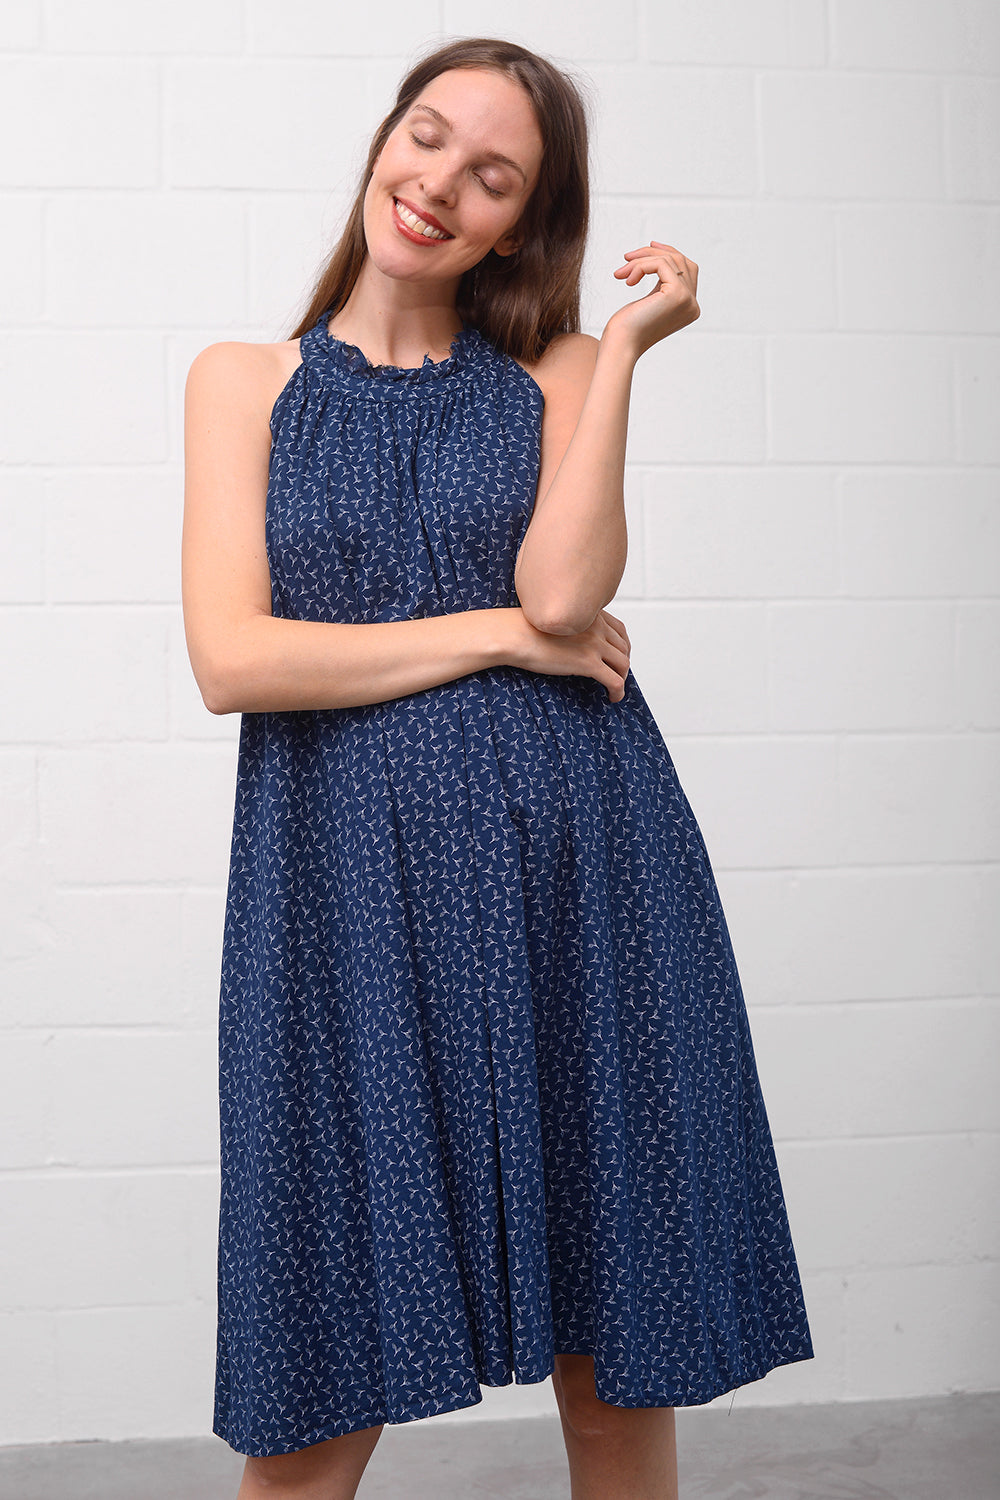 Adorina Dress - indigo